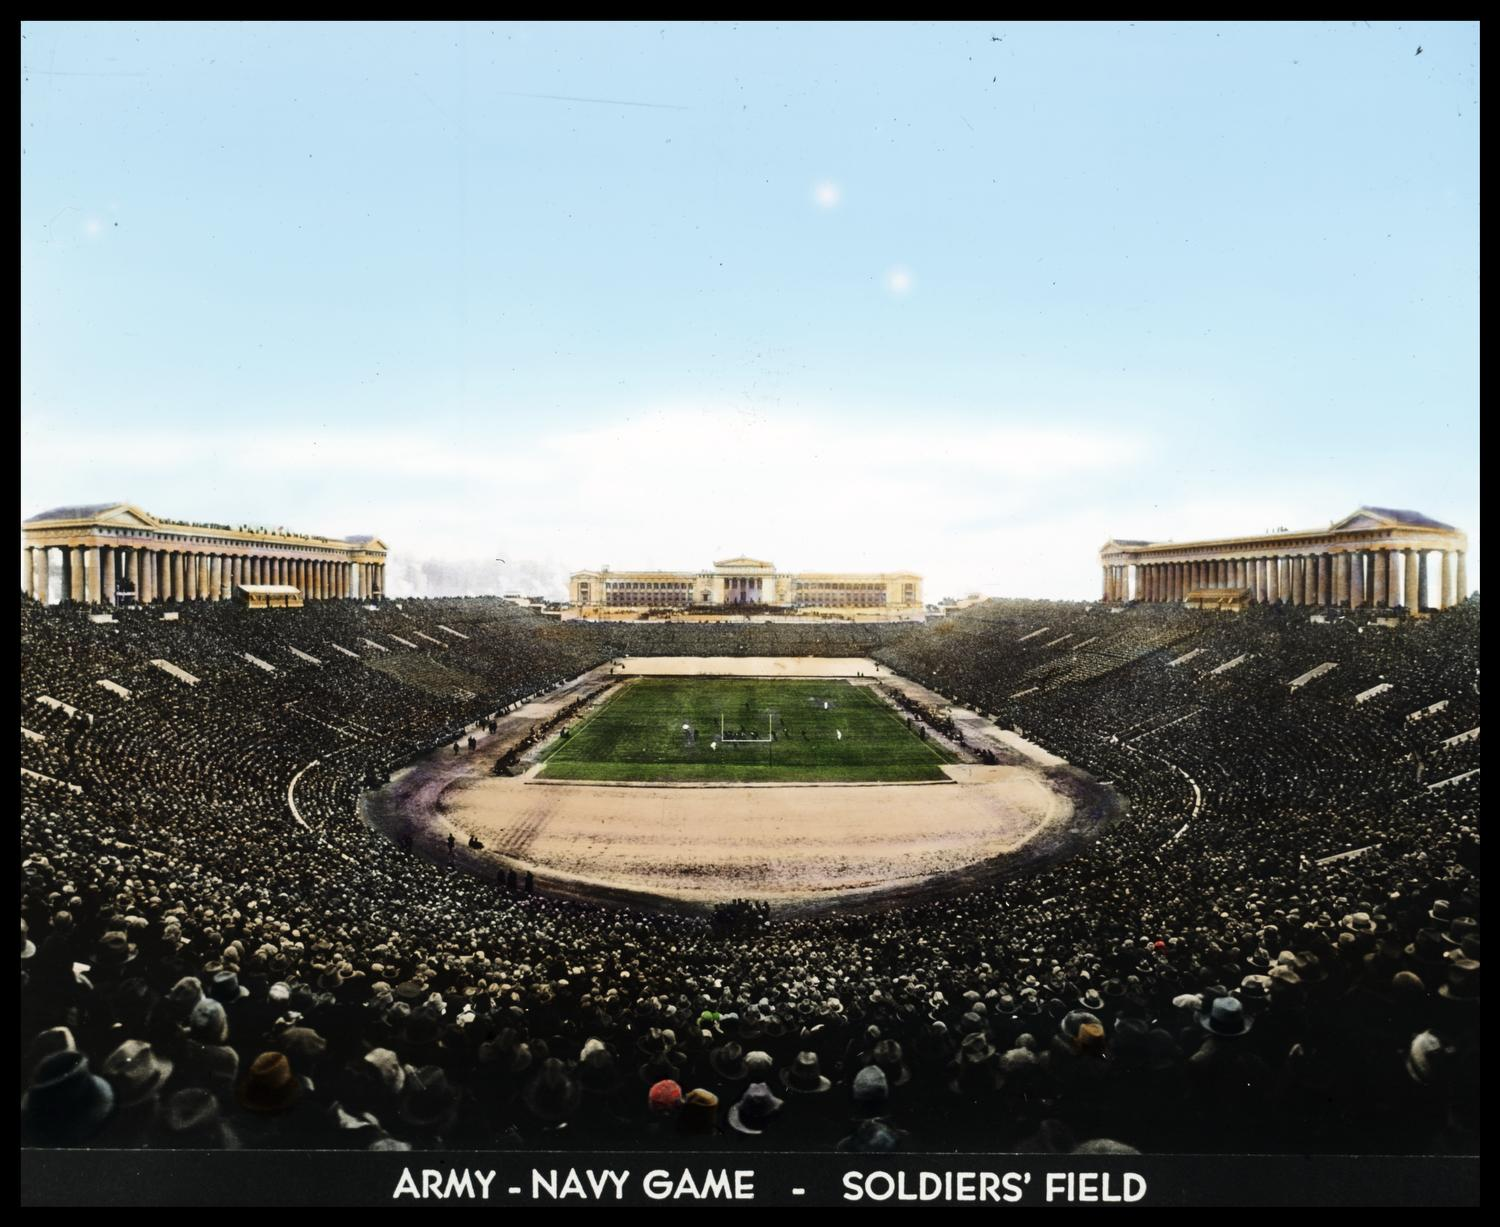 [The Army-Navy football game at Soldier's Field.]